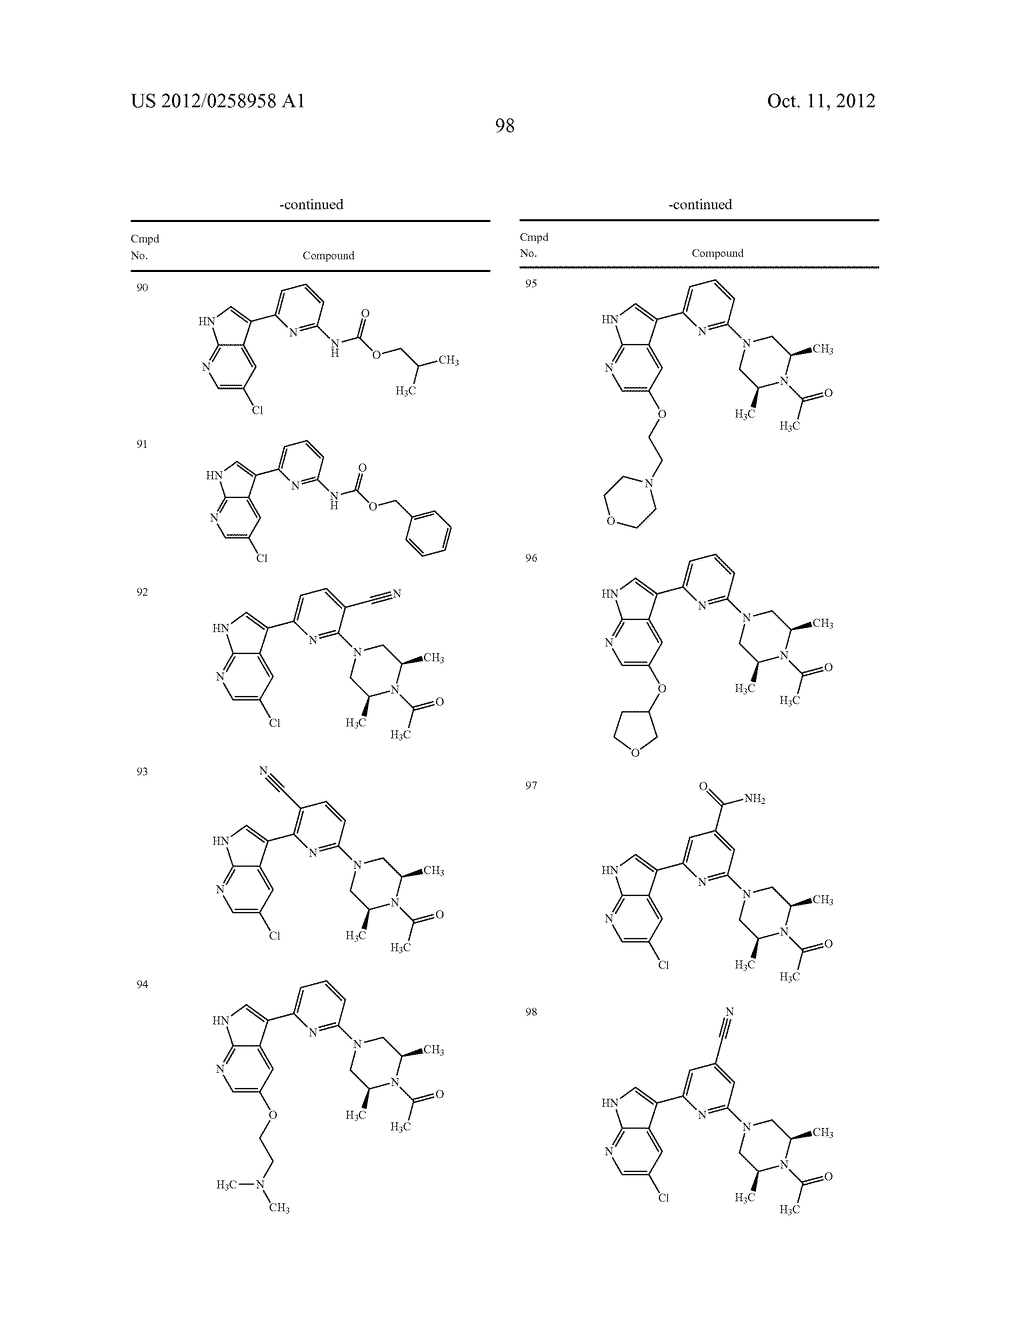 AZAINDOLES USEFUL AS INHIBITORS OF JAK AND OTHER PROTEIN KINASES - diagram, schematic, and image 99